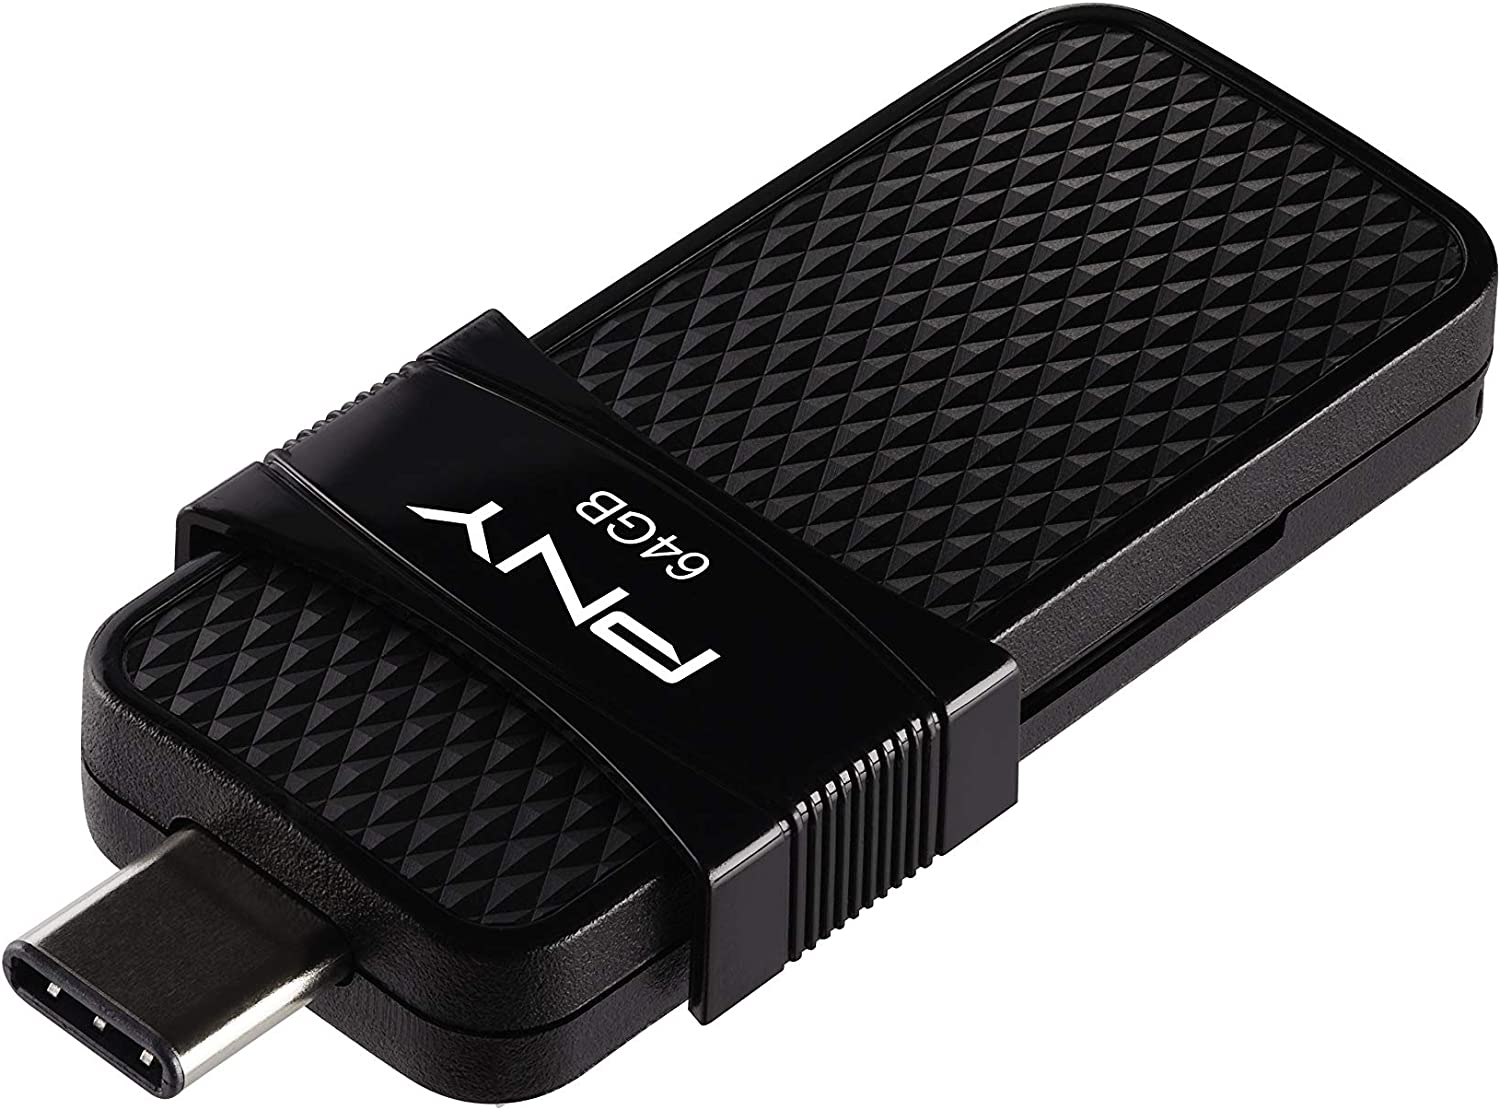 PNY 64GB Duo Link USB 3.1 Type-C OTG Flash Drive for Android Devices and Computers - External Mobile Storage for Photos, Videos, and More